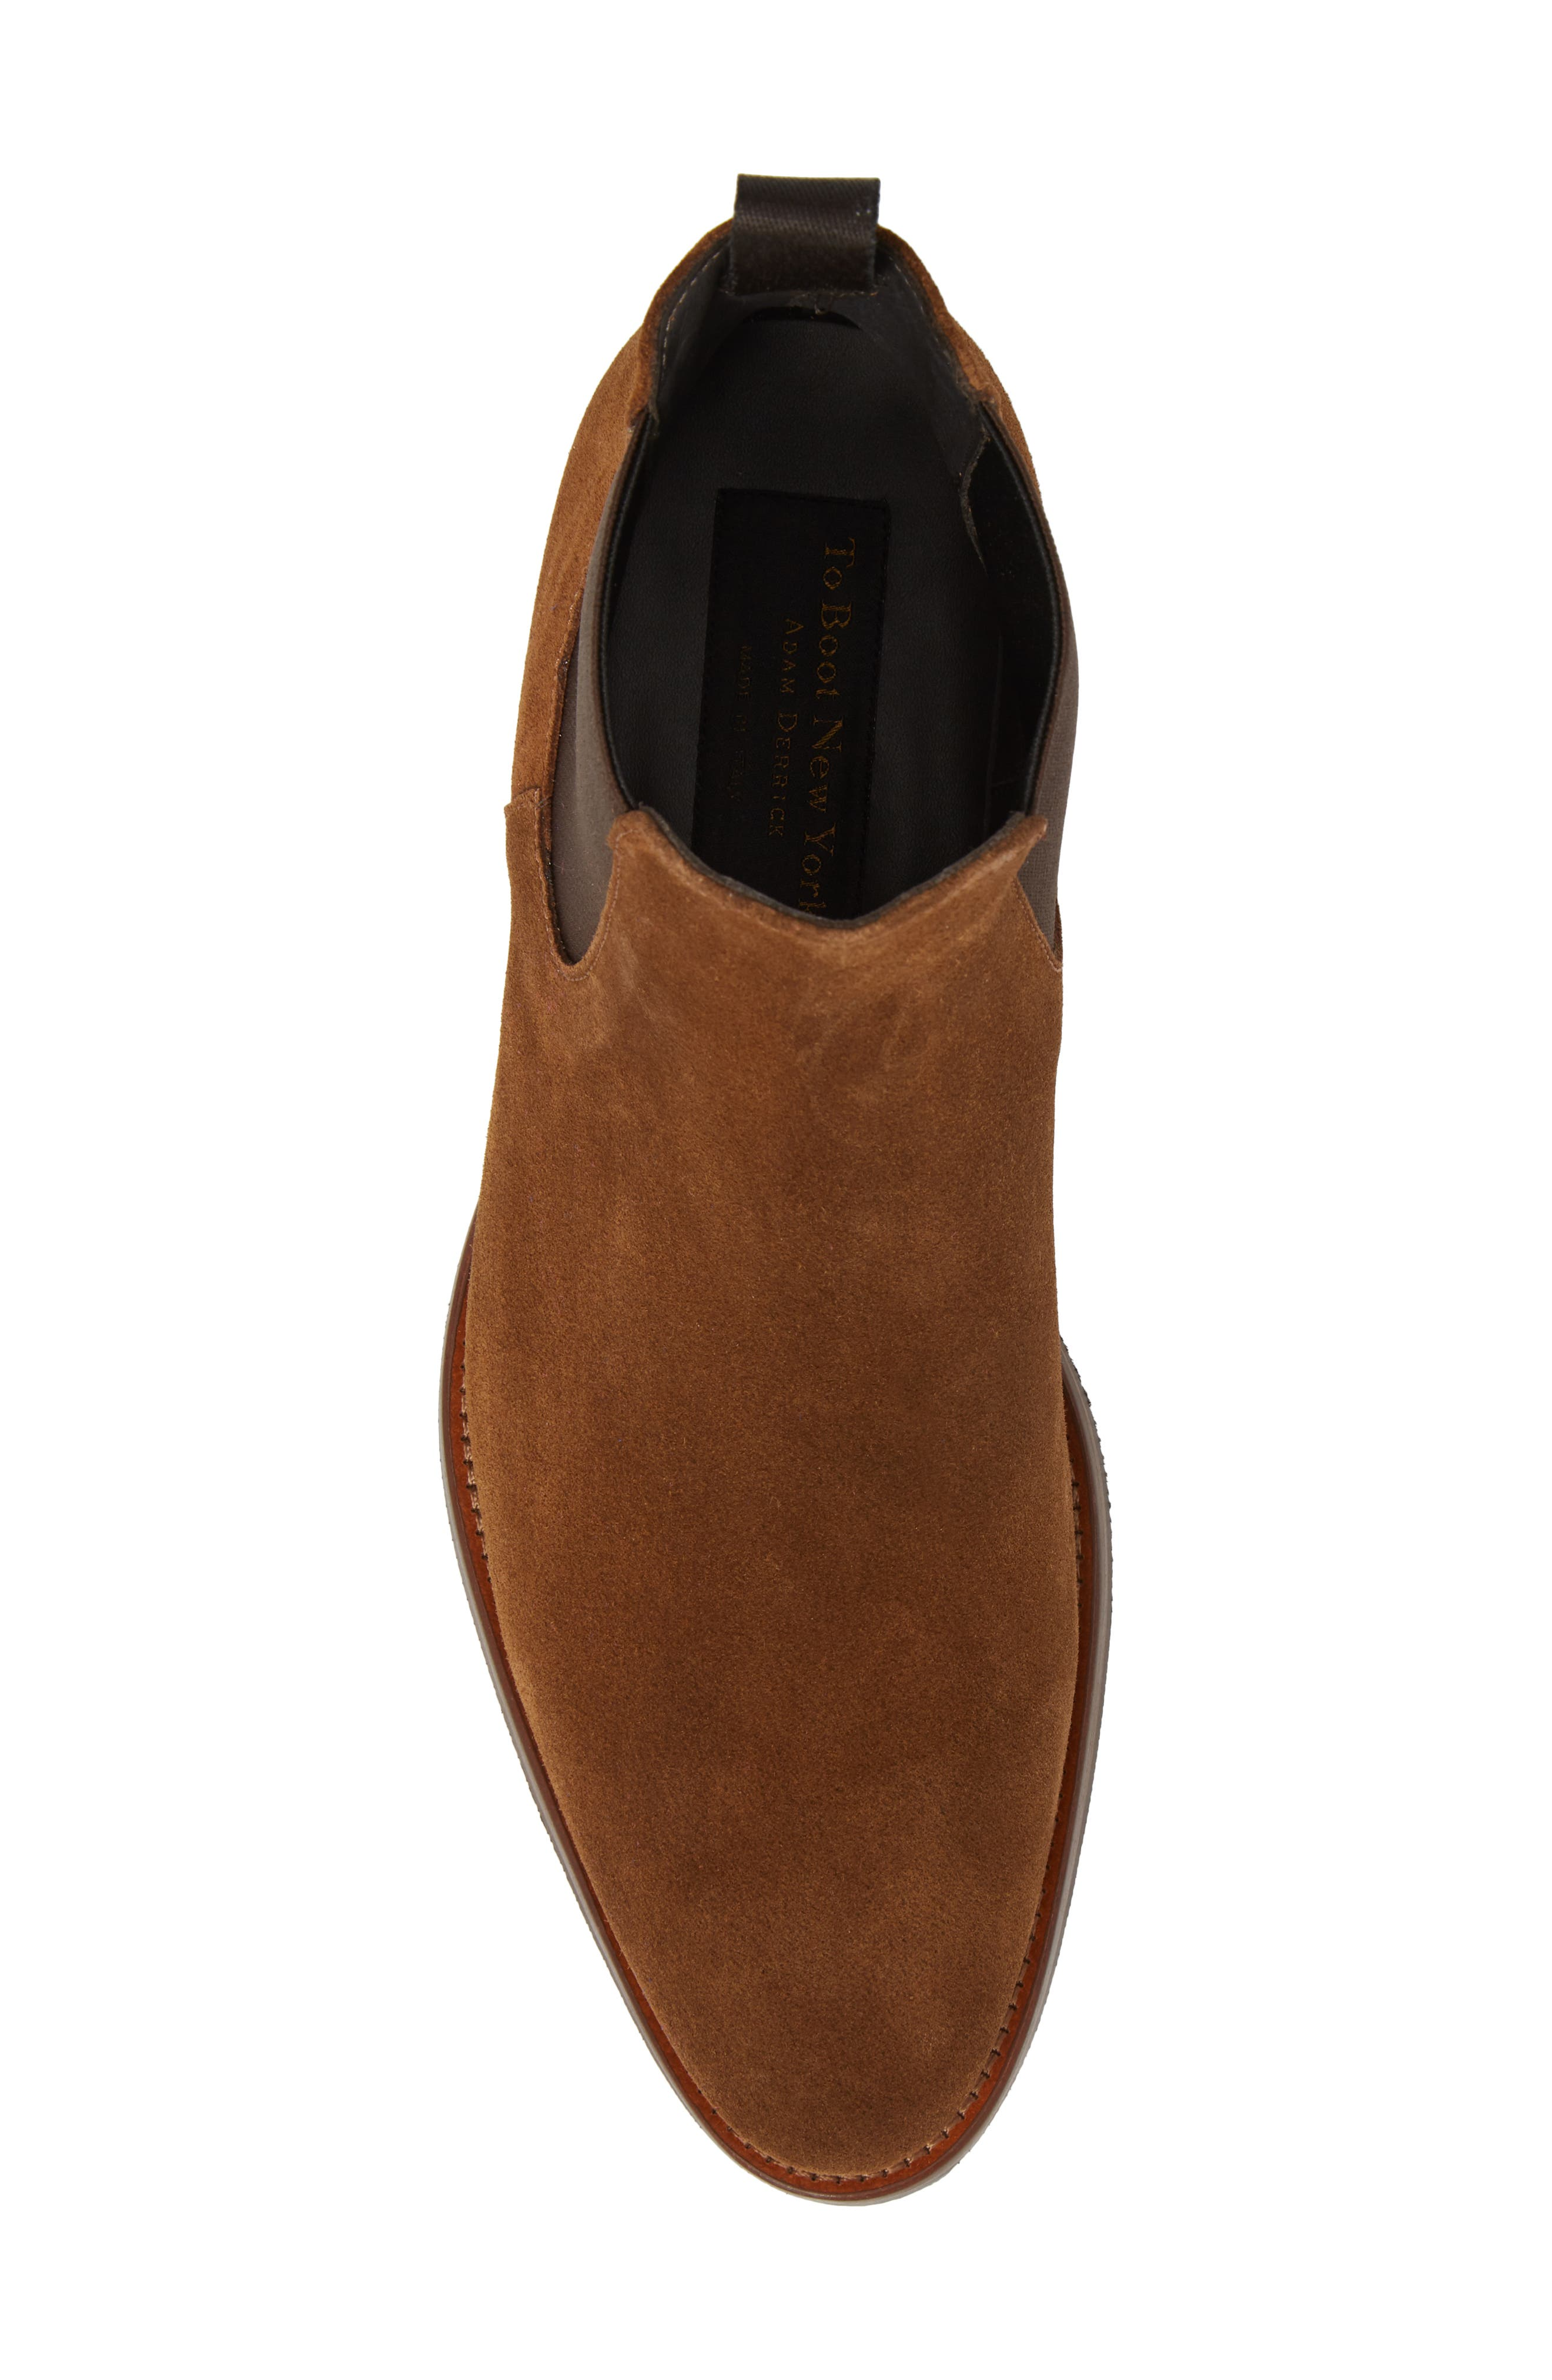 TO BOOT NEW YORK, Shelby Mid Chelsea Boot, Alternate thumbnail 5, color, MID BROWN SUEDE